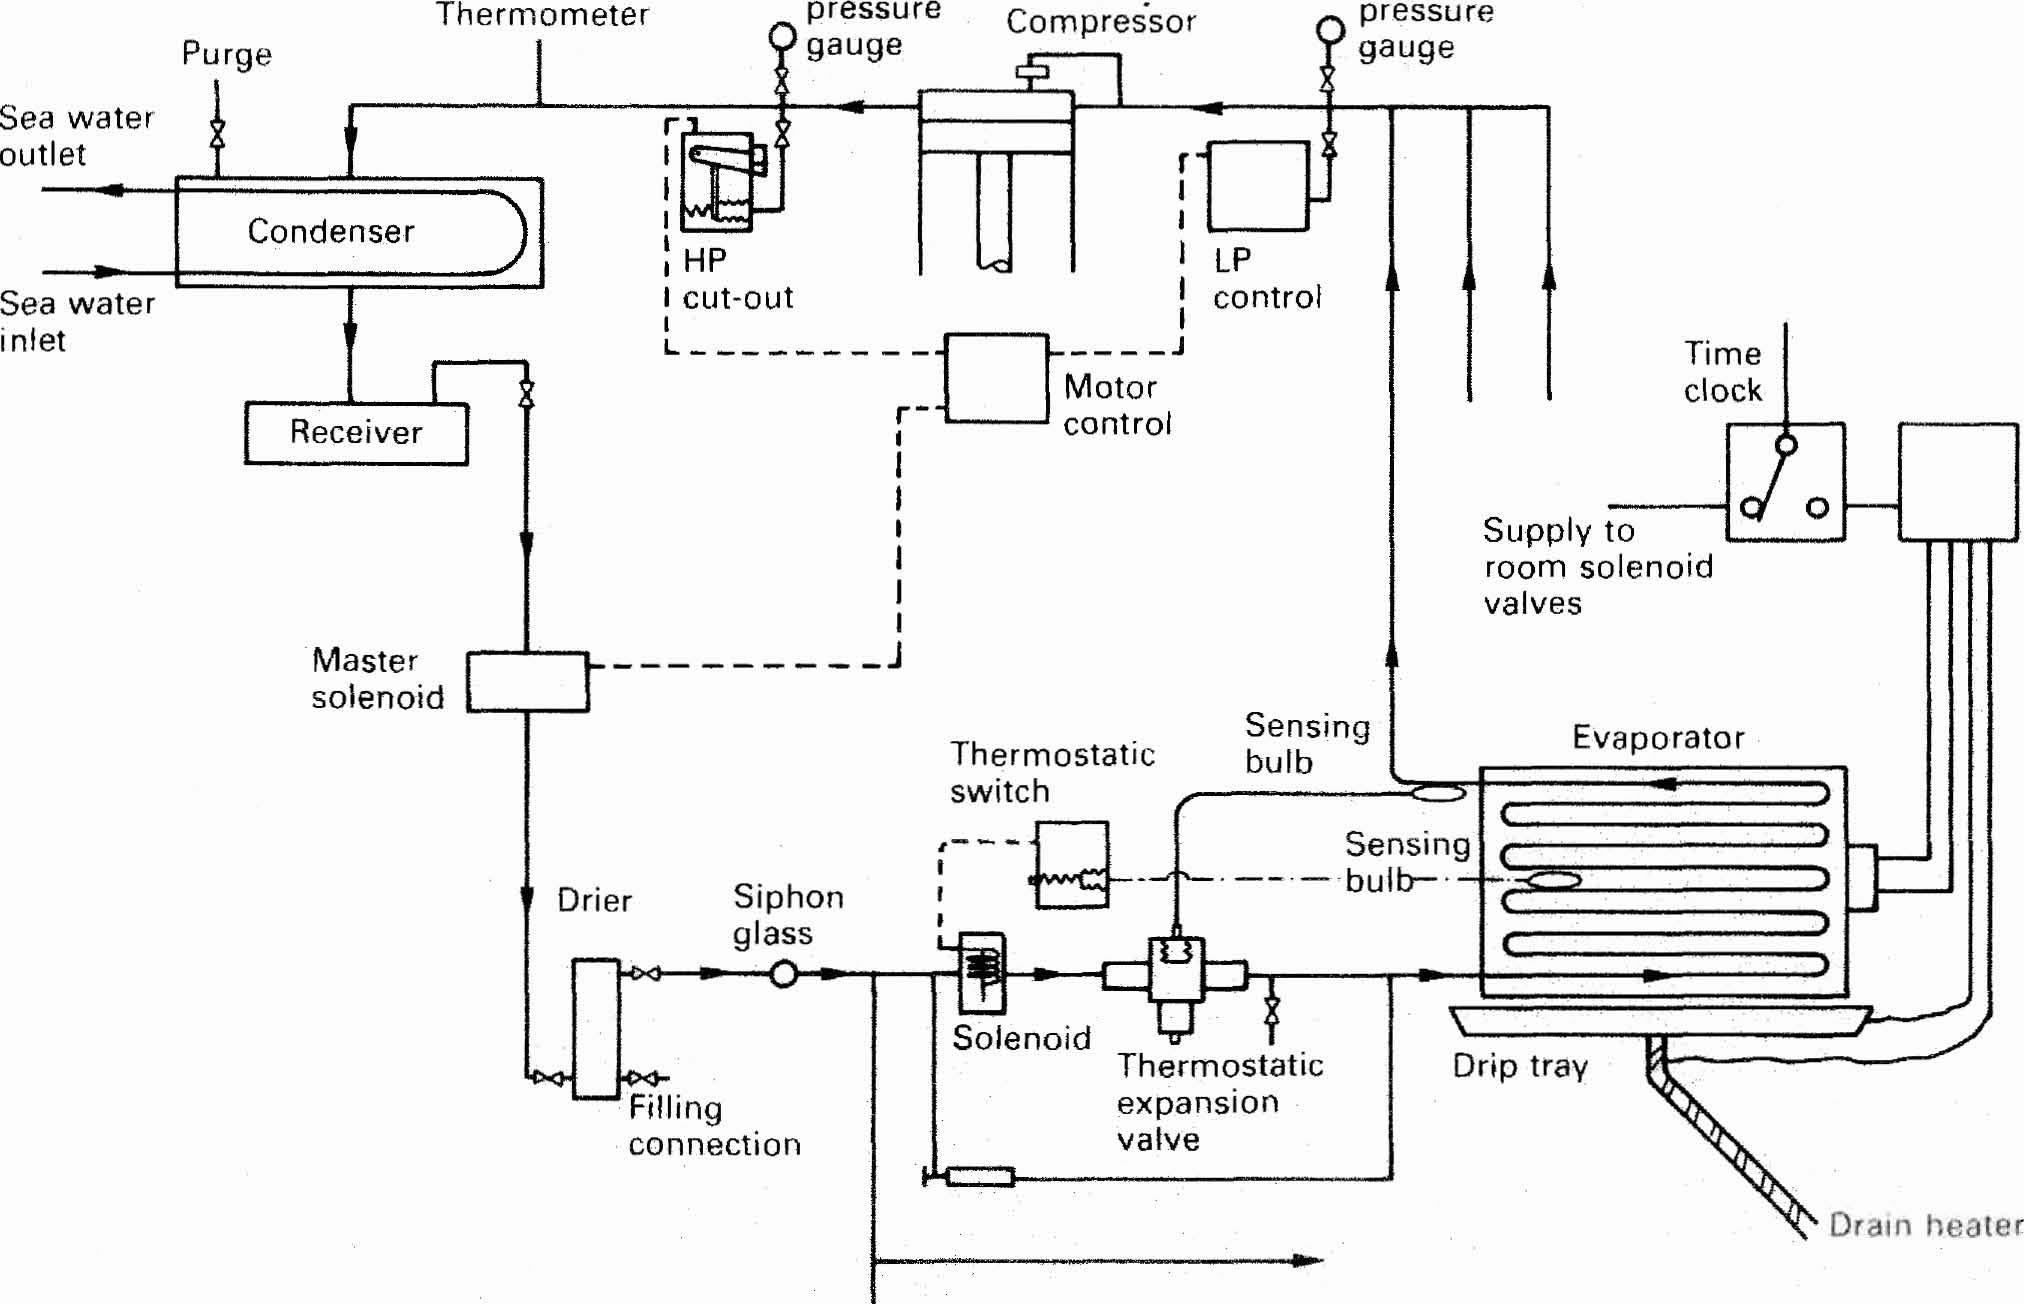 reefer york chiller control wiring diagram york wiring diagrams collection  at readyjetset.co